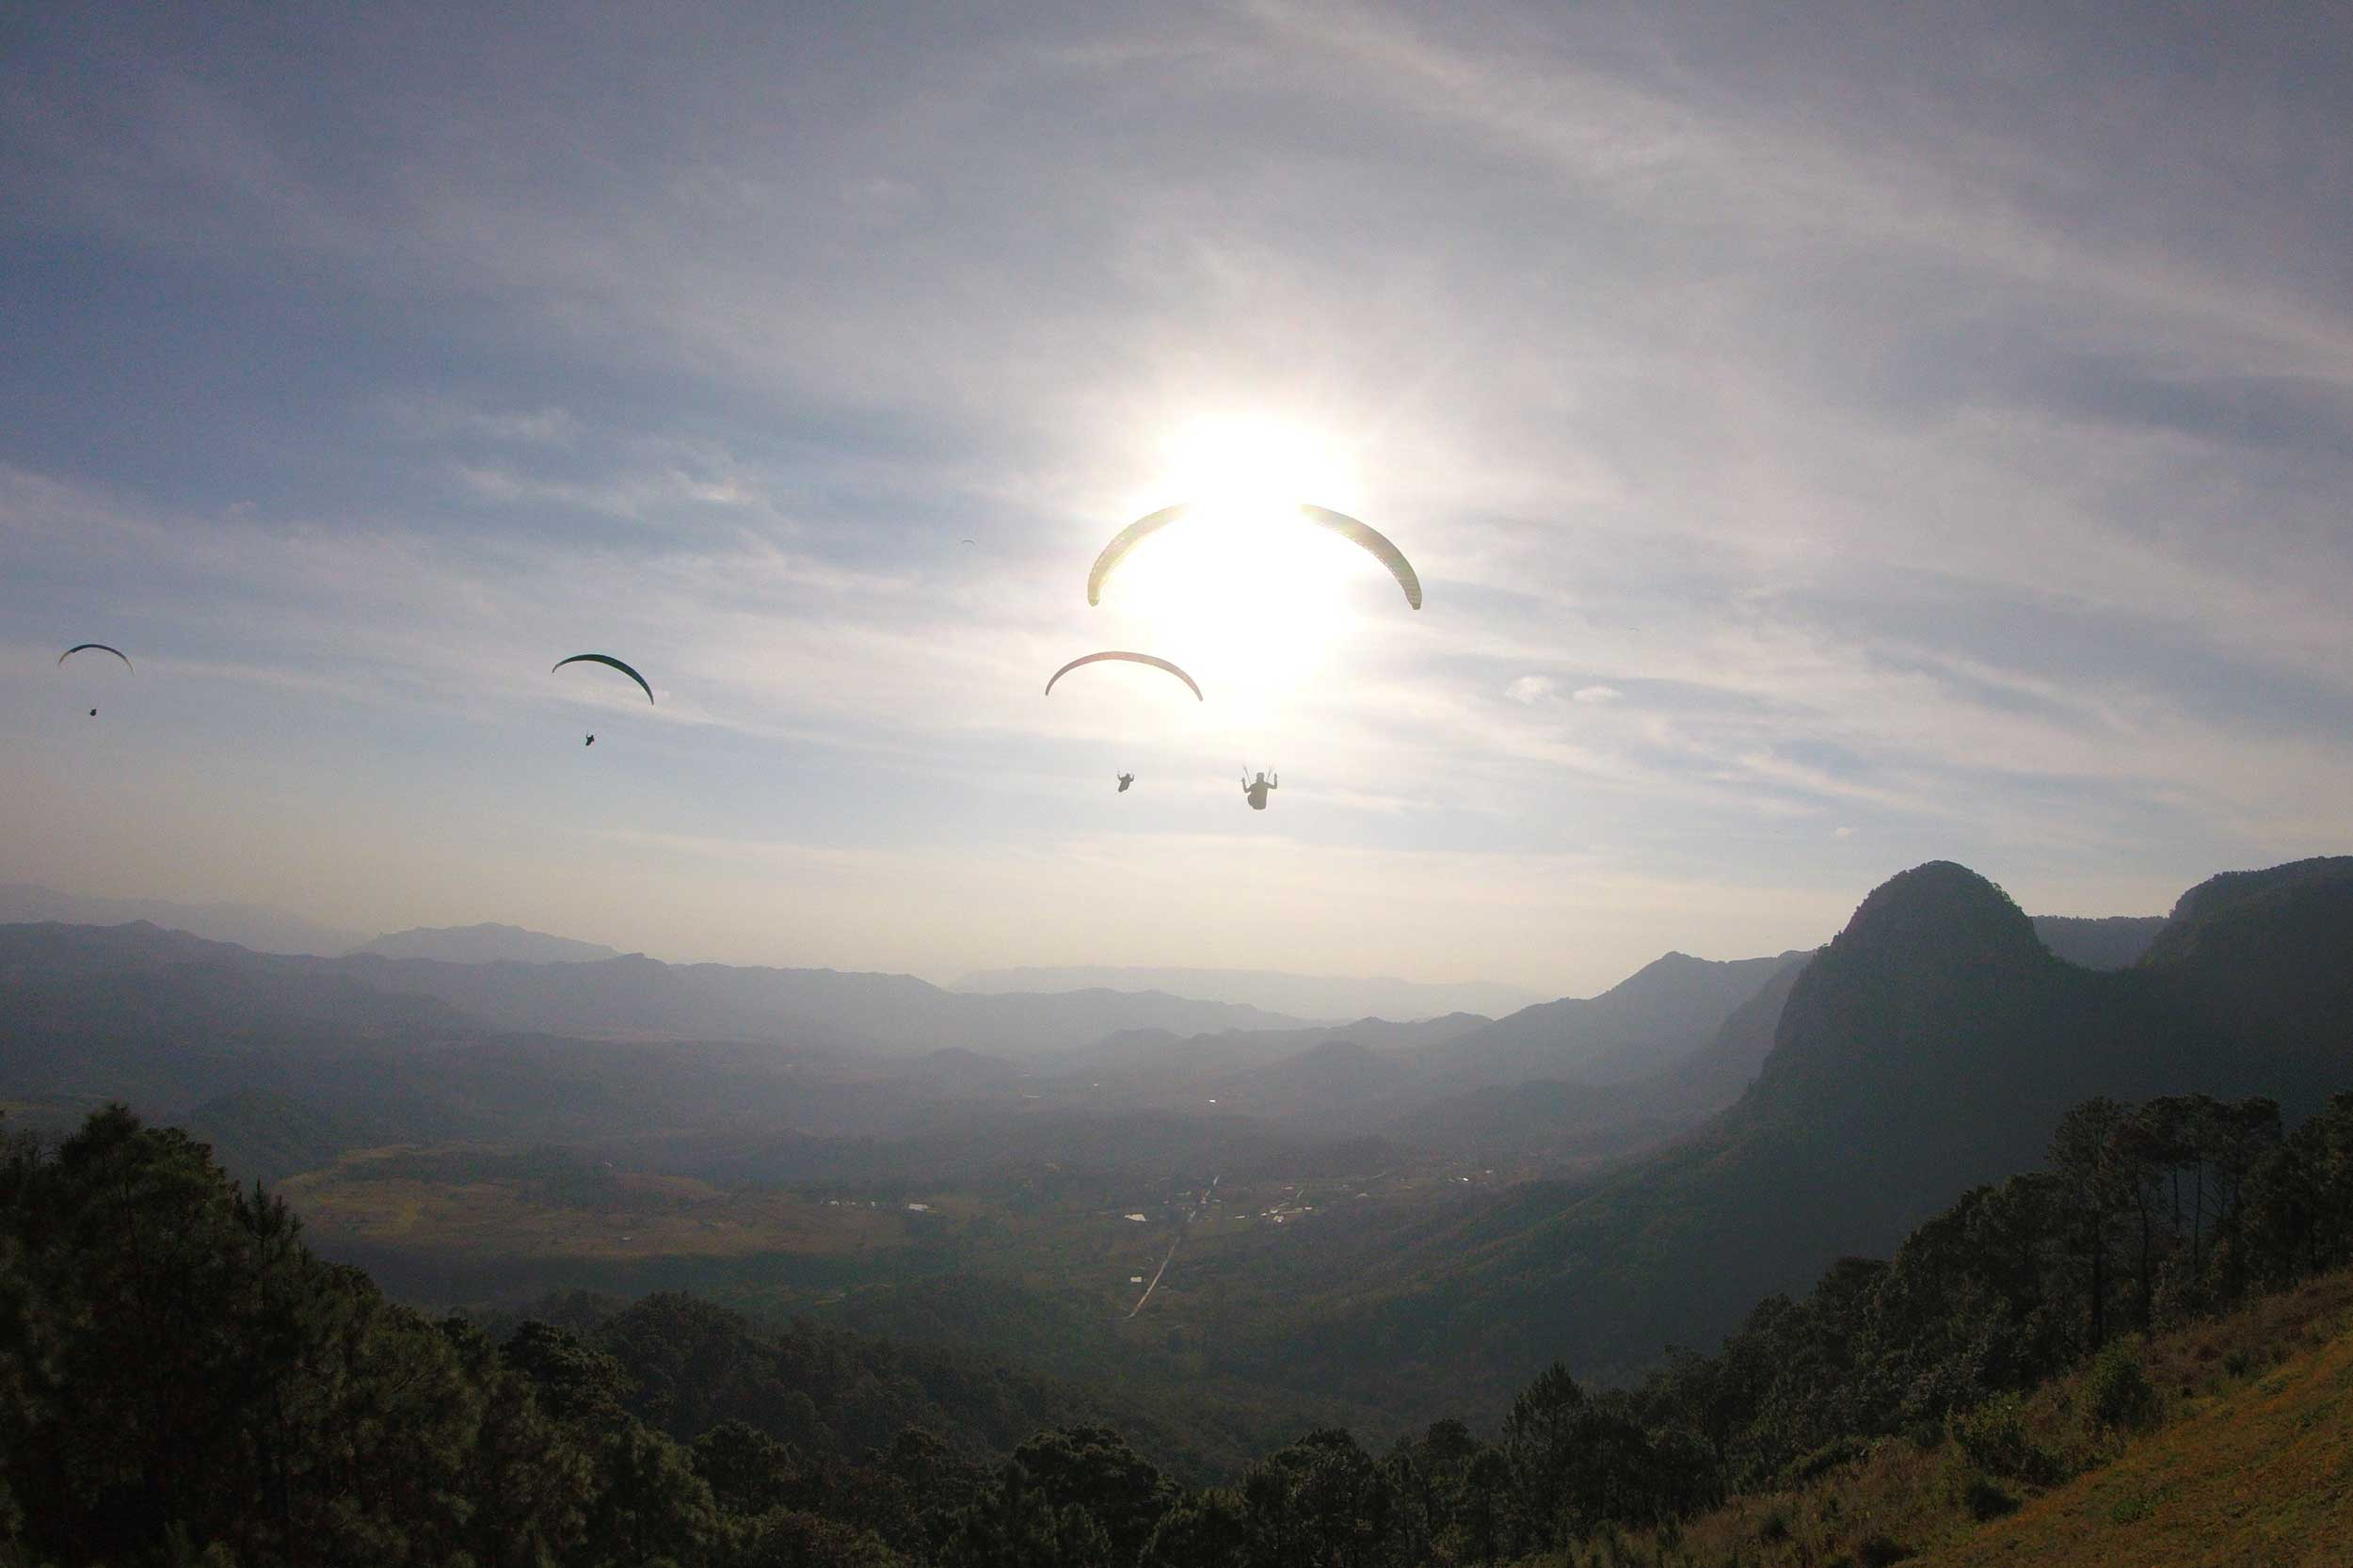 Paraglide-New-England-Trips-Valle-de-Bravo-Mexico-Gallery-Sunset-Launch-Silhouette.jpg